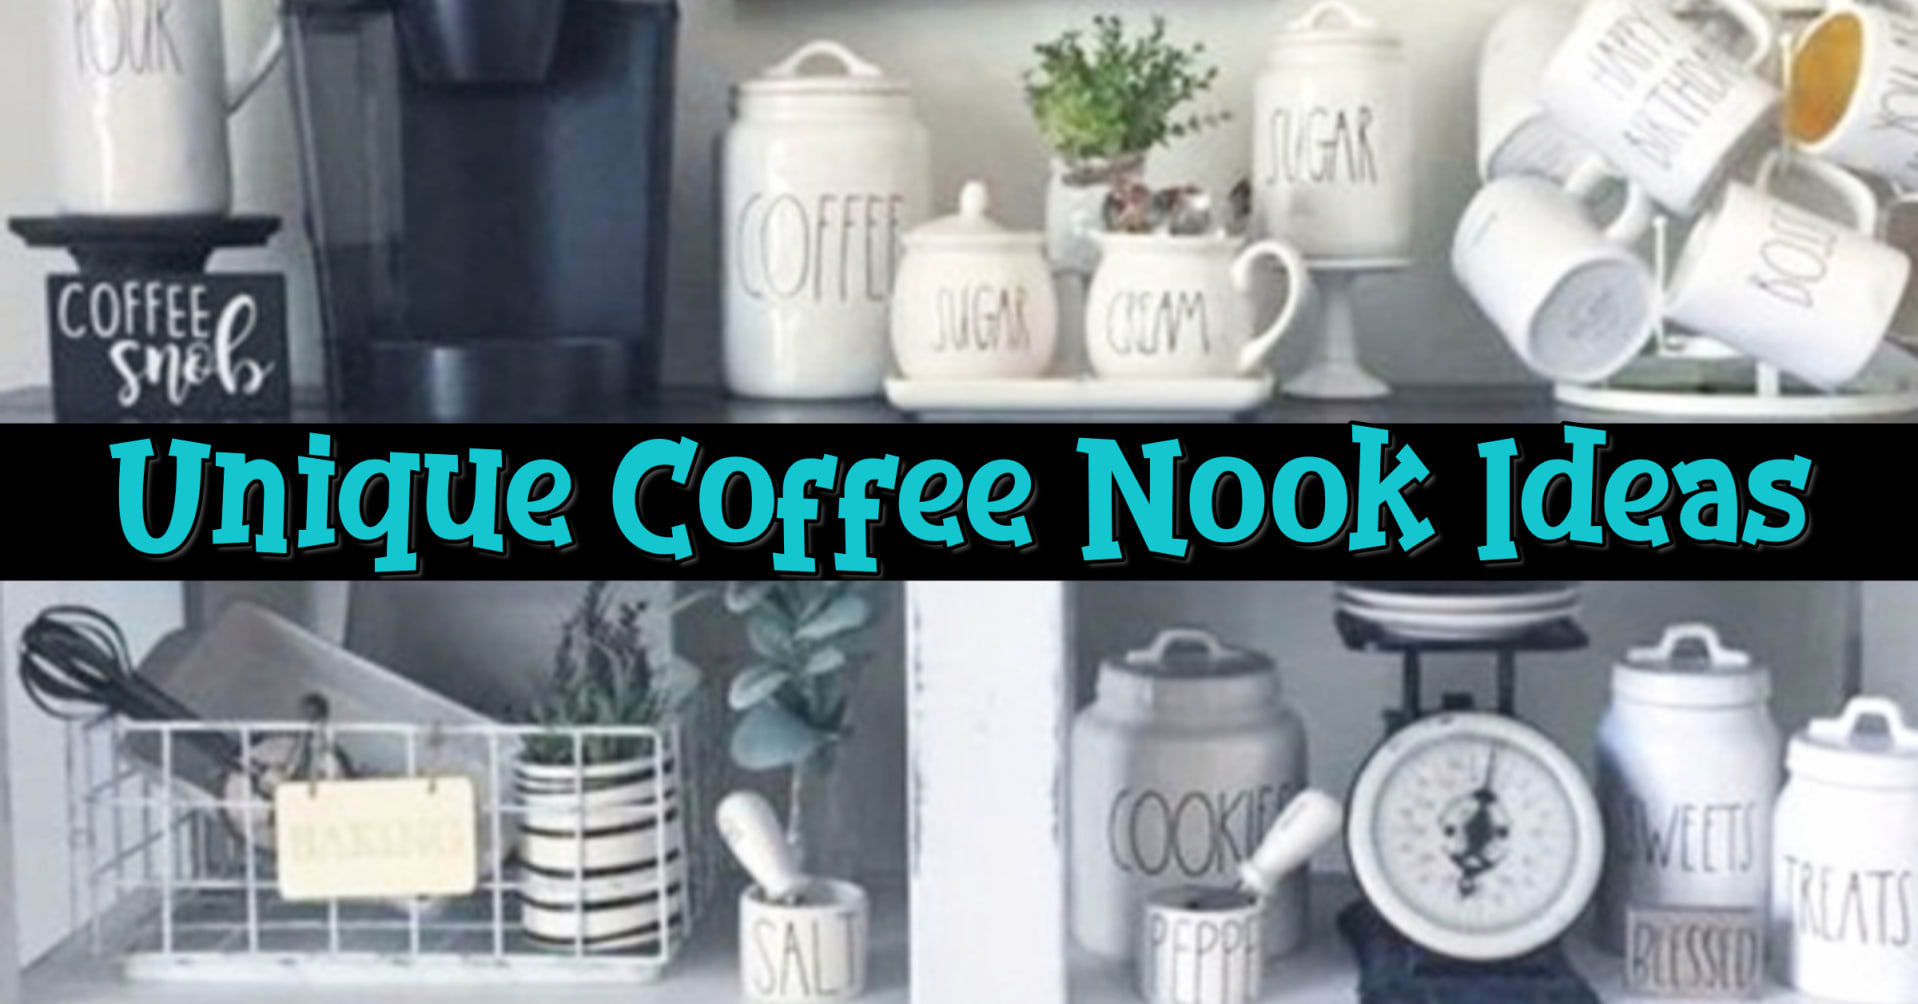 Coffee Nook Ideas We LOVE • </strong></center> These coffee nook ideas for small spaces in your kitchen are so cute - they're like a cozy corner in your kitchen!  I'm a big fan of farmhouse kitchen decor - more of a modern rustic type kitchen decor - so these kitchen coffee nooks are PERFECT for my house!